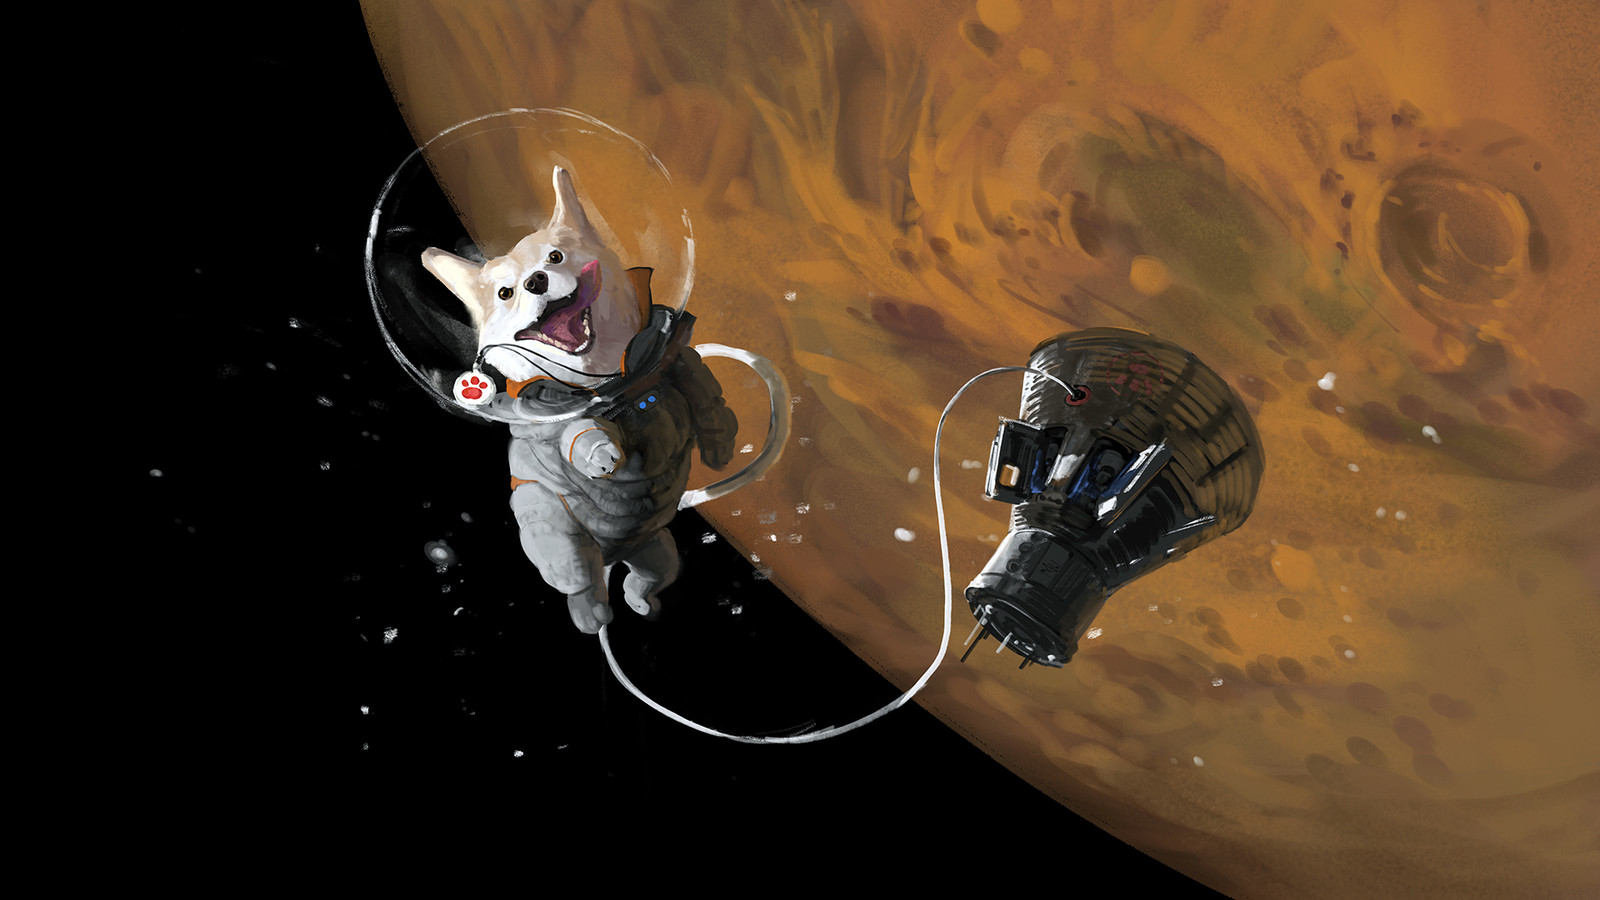 Space doge